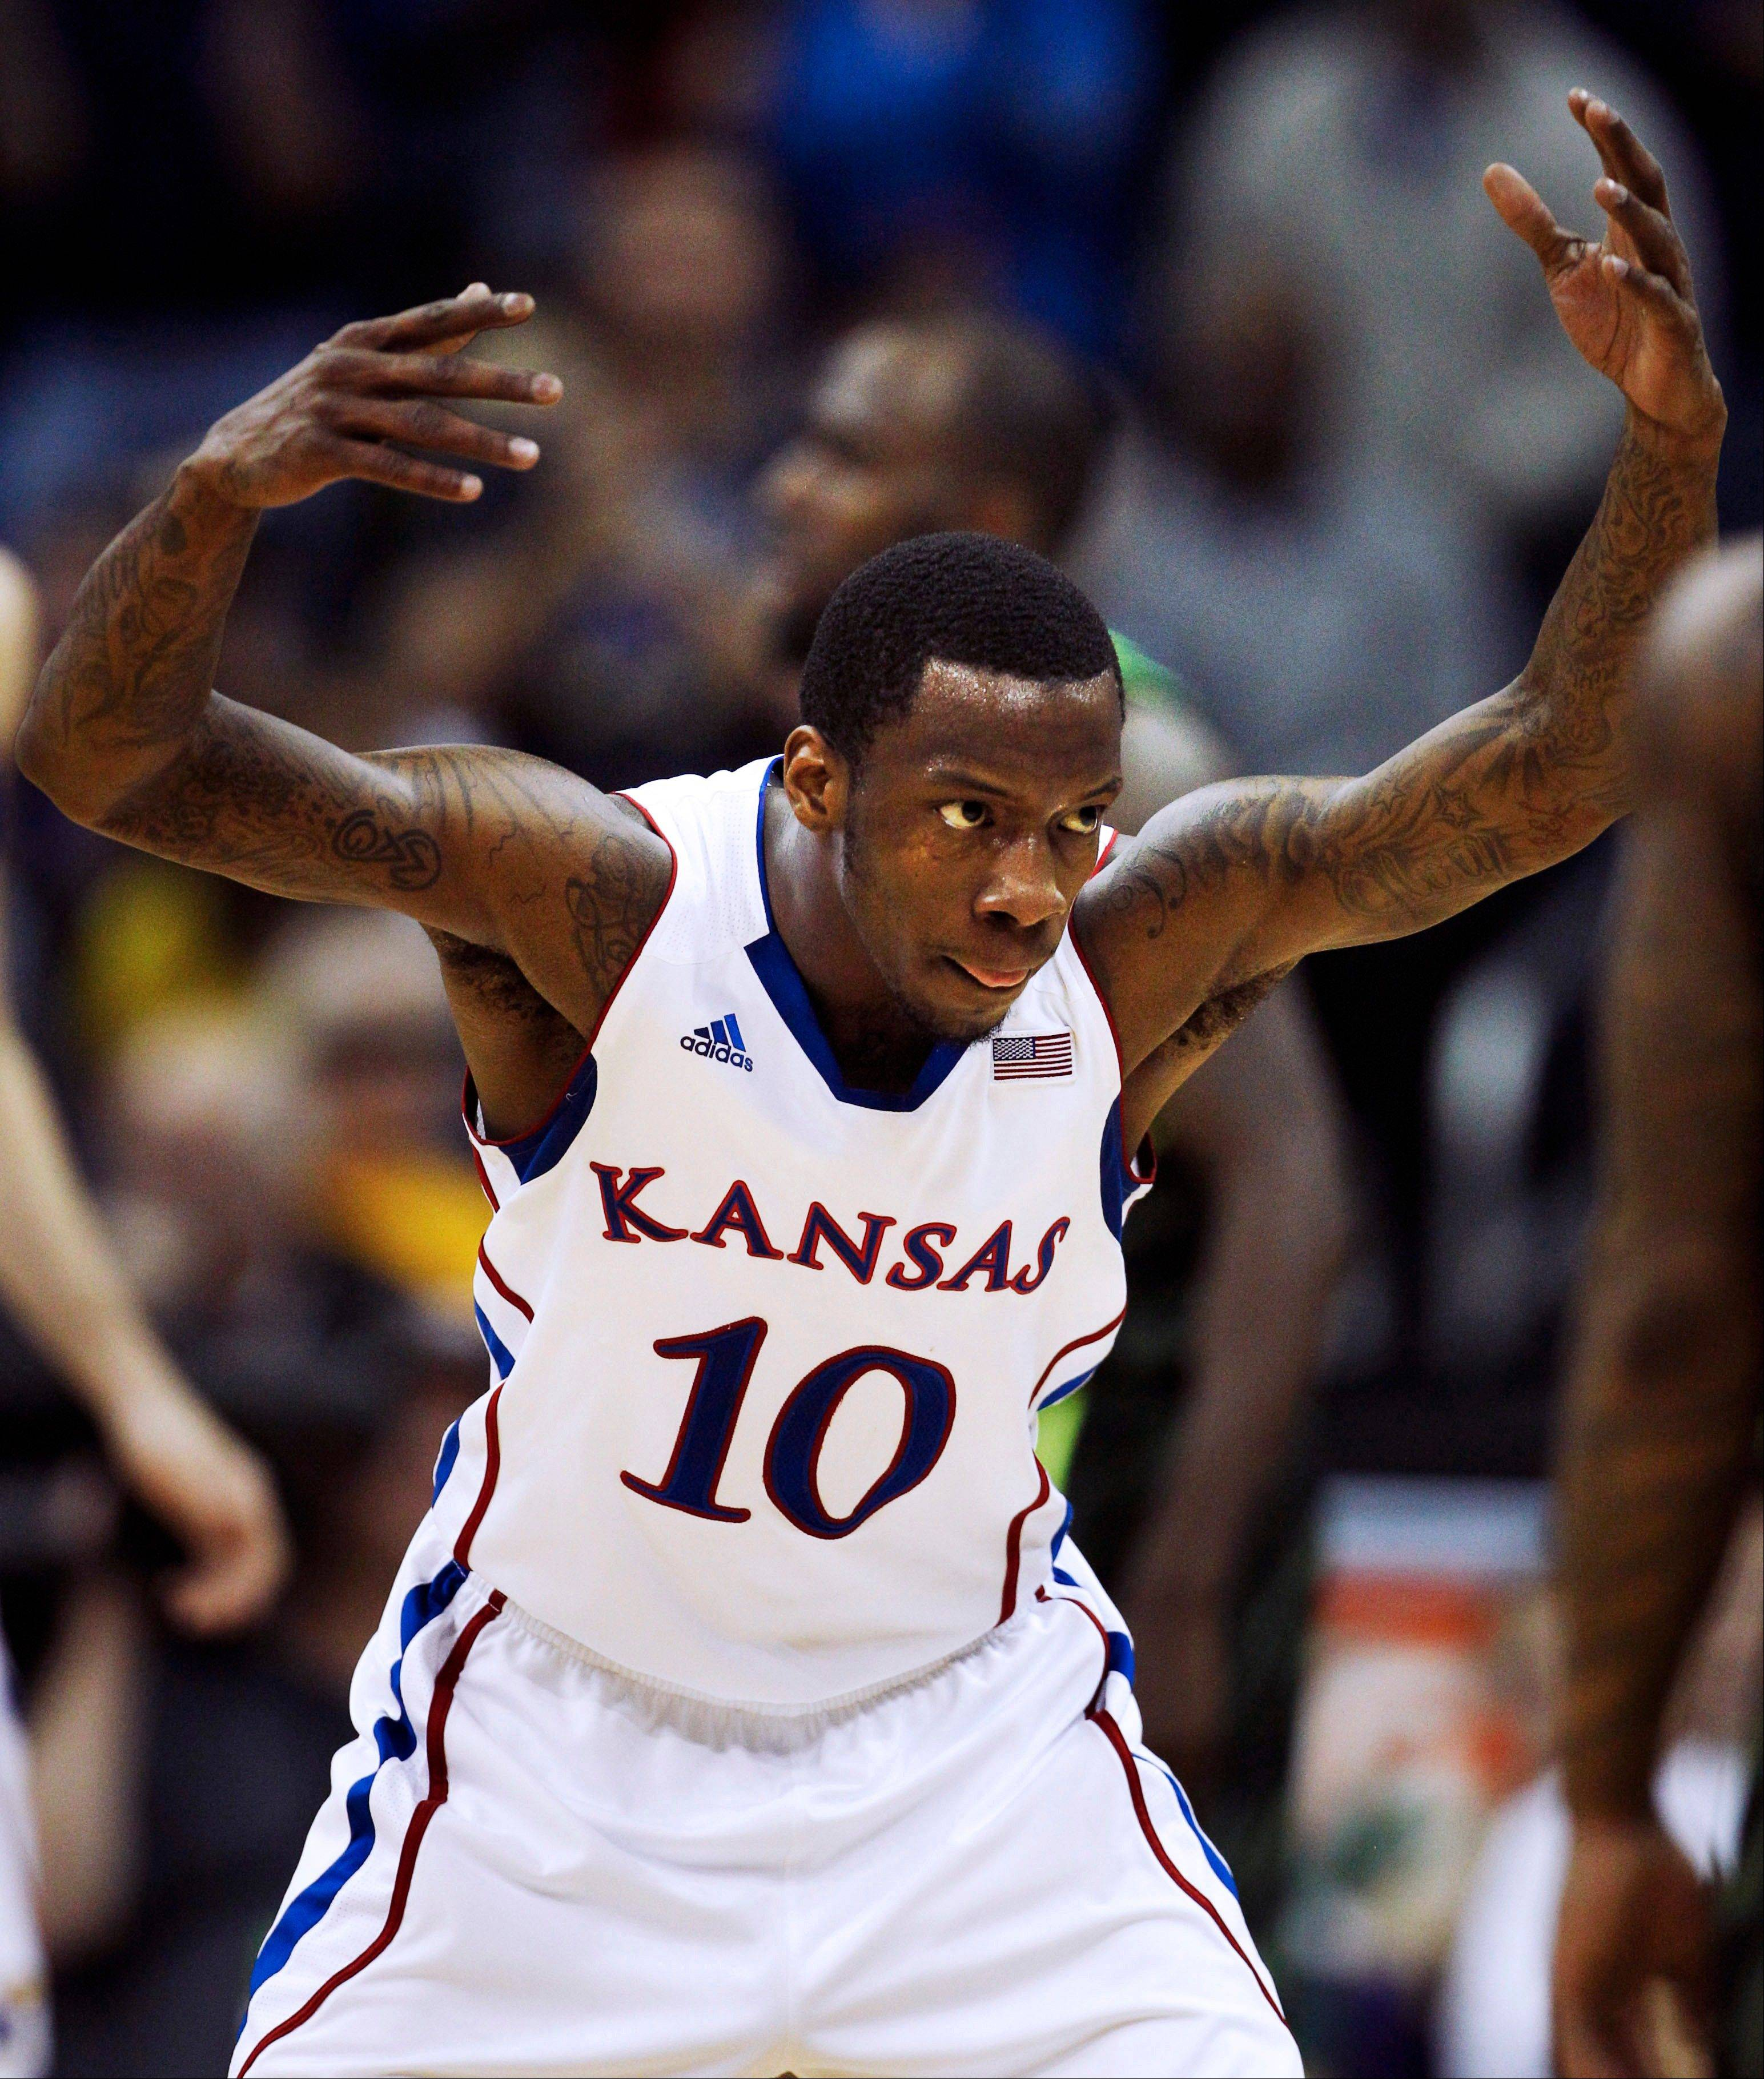 Kansas guard Tyshawn Taylor and his teammates have navigated a schedule that included games against Kentucky, Duke, Ohio State and Georgetown, plus an 18-game Big 12 schedule.